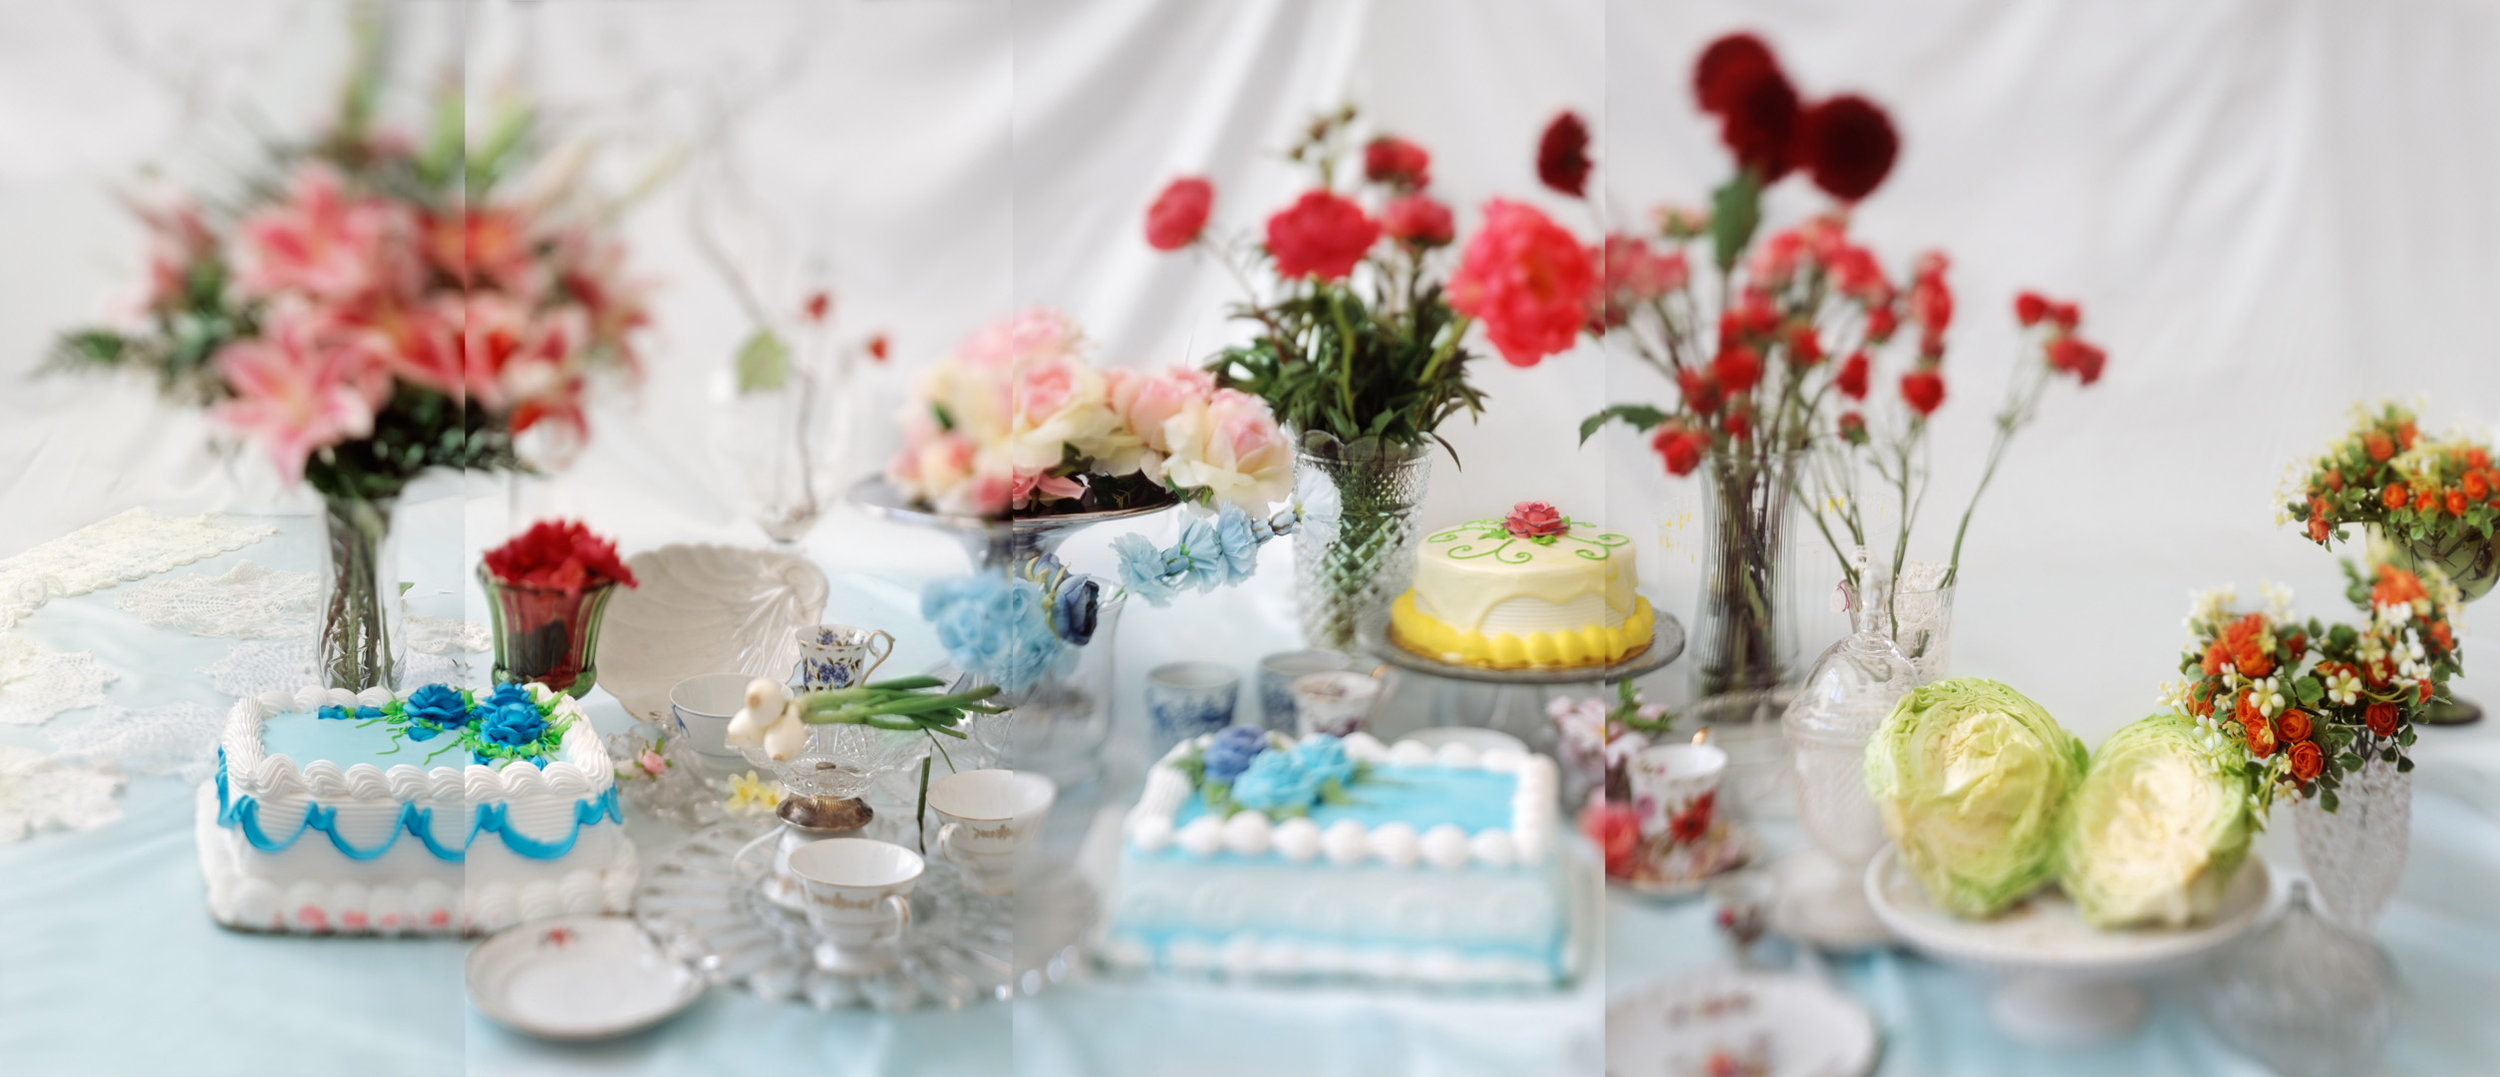 Blue Cake,  22 x 52 inches, archival pigment print, 2009